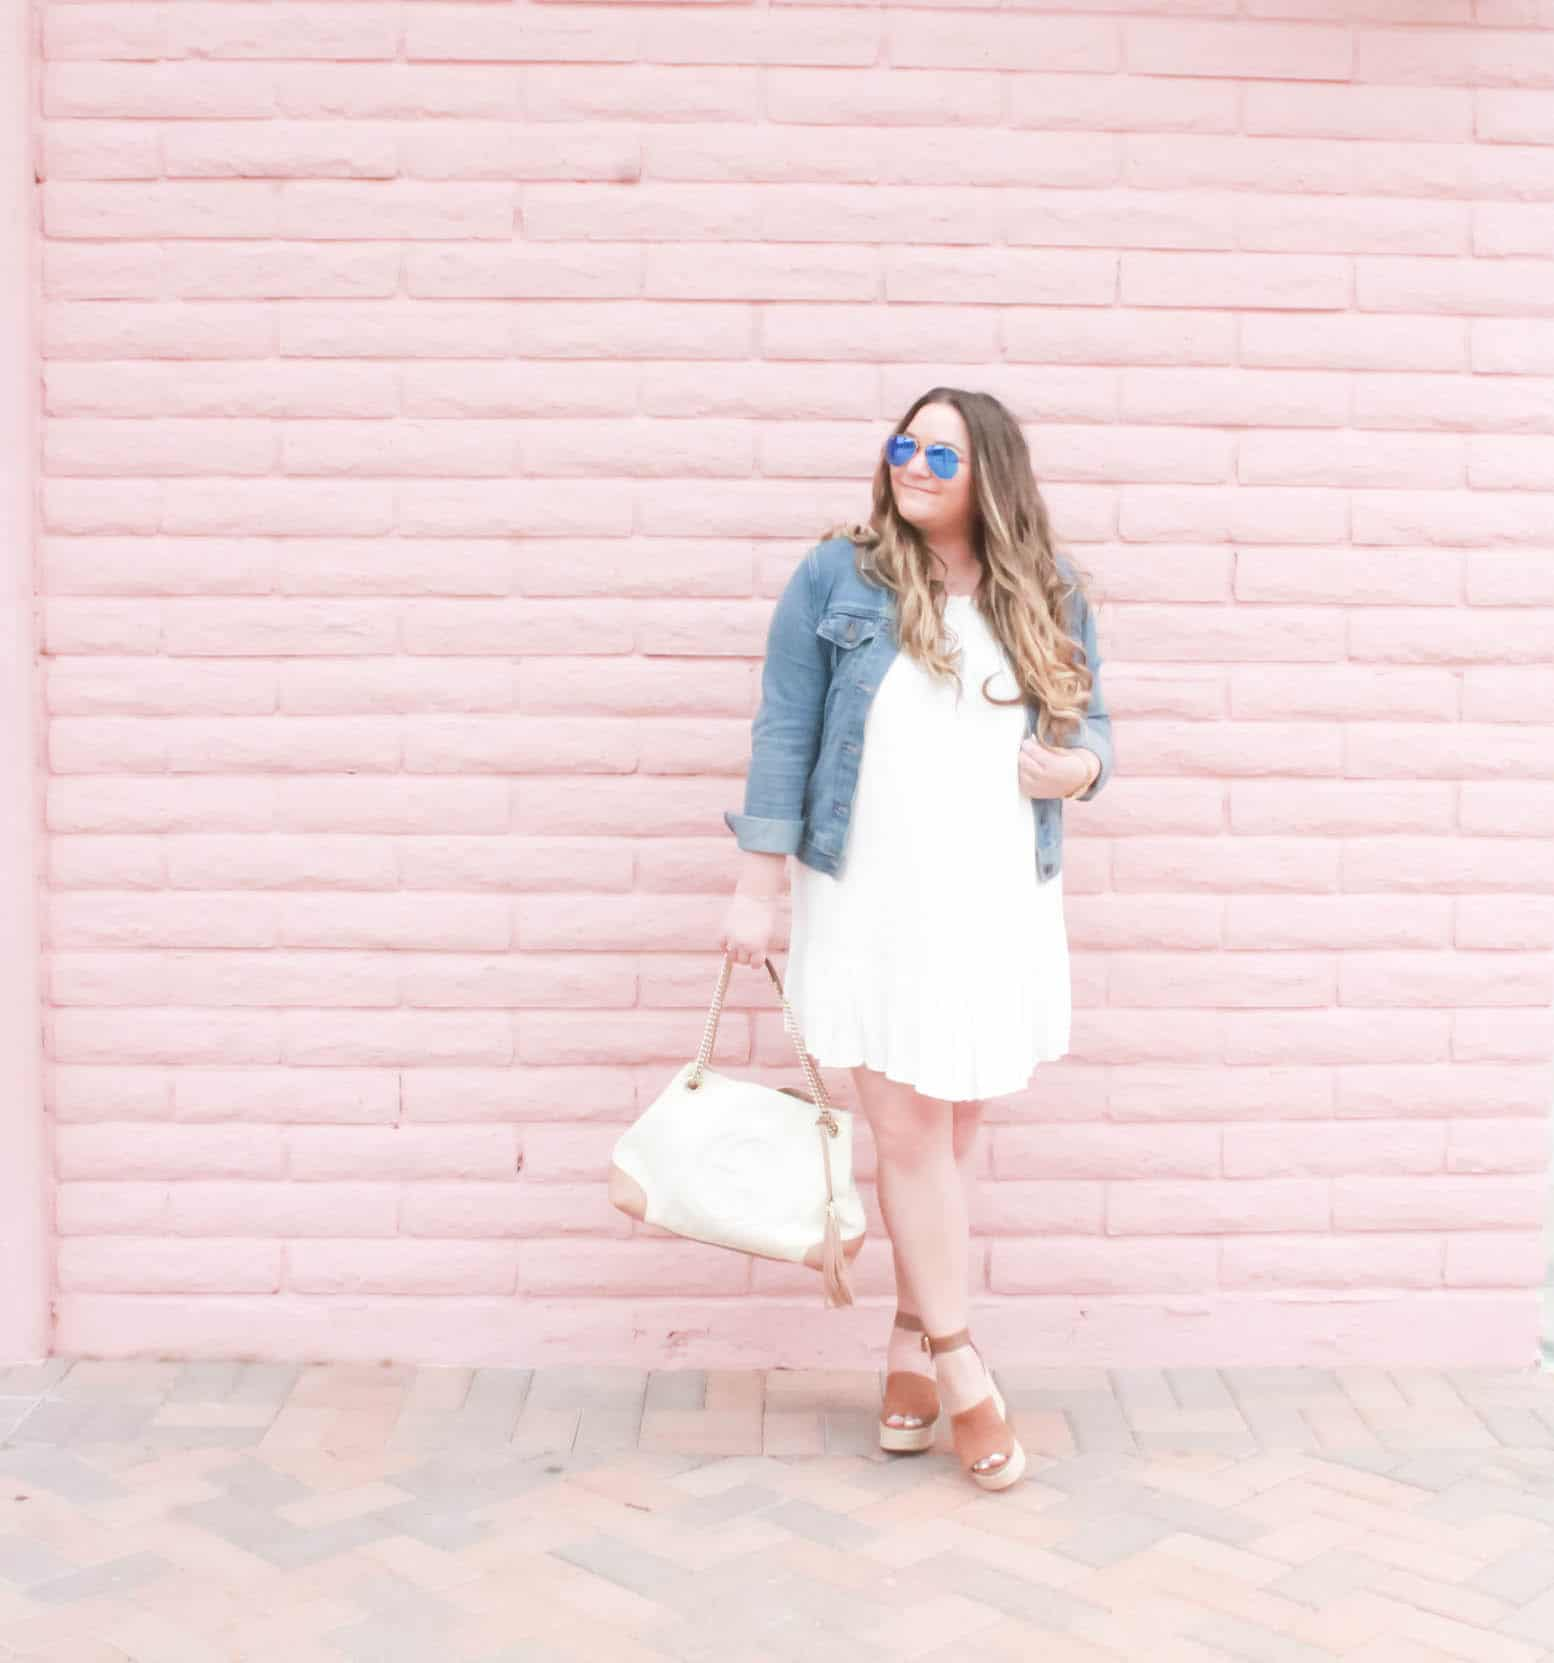 missyonmadison, gucci soho tote, fashion inspo, outfit inspo, missyonmadison blog, missyonmadison instagram, melissa tierney, fashion blog, fashion blogger,style blog, style blogger, gucci, gucci white soho tote, raybans, old navy denim jacket,white tart collections dress, tart collections liz dress, marc fischer shoes, tan platform wedges, summer style, spring style, summer 2018 style, la blogger,